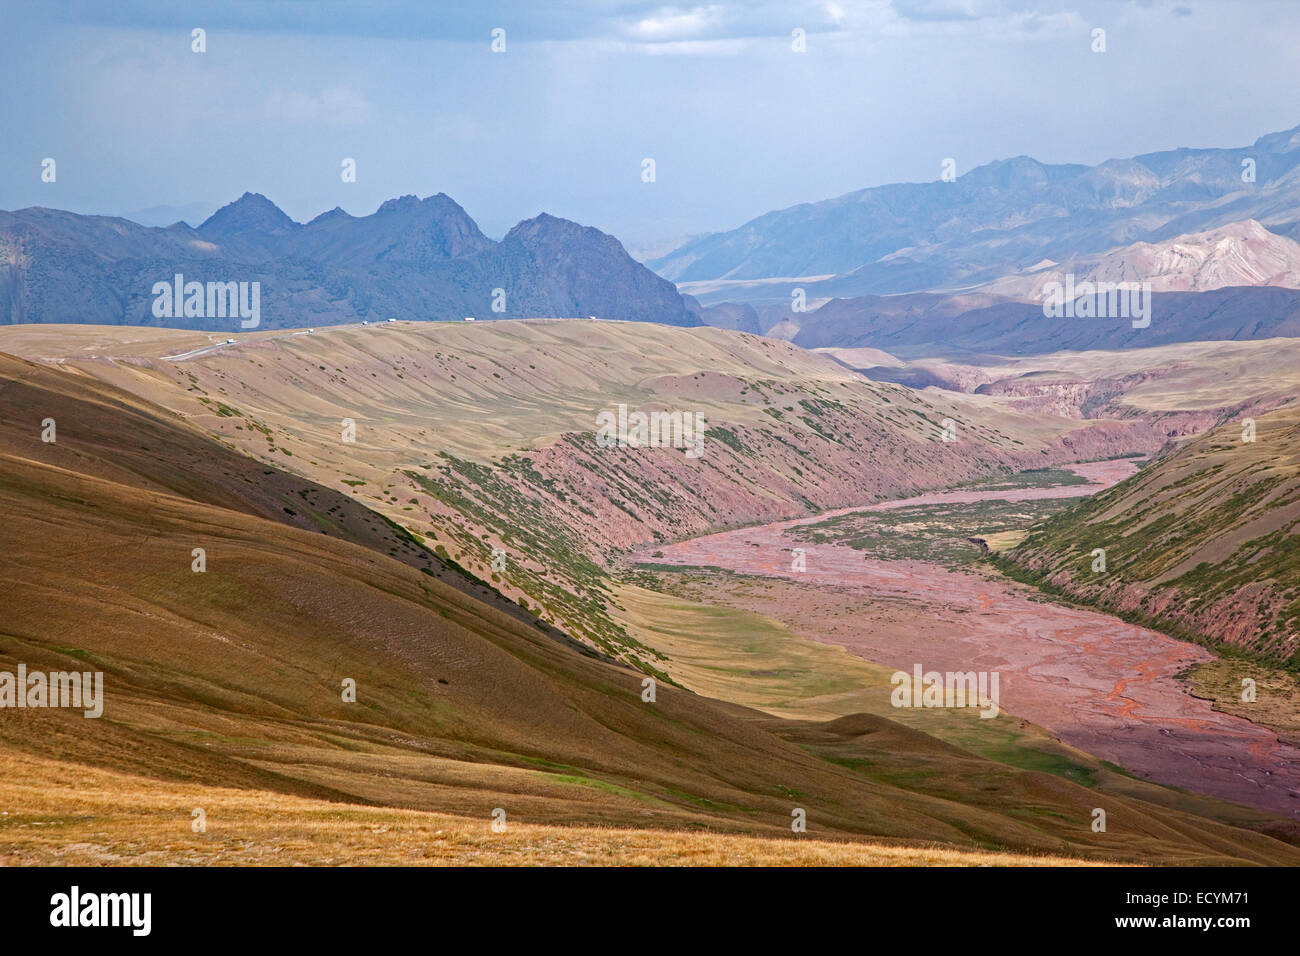 Riverbed along road over the Irkeshtam pass, border crossing between Kyrgyzstan and Xinjiang, China - Stock Image